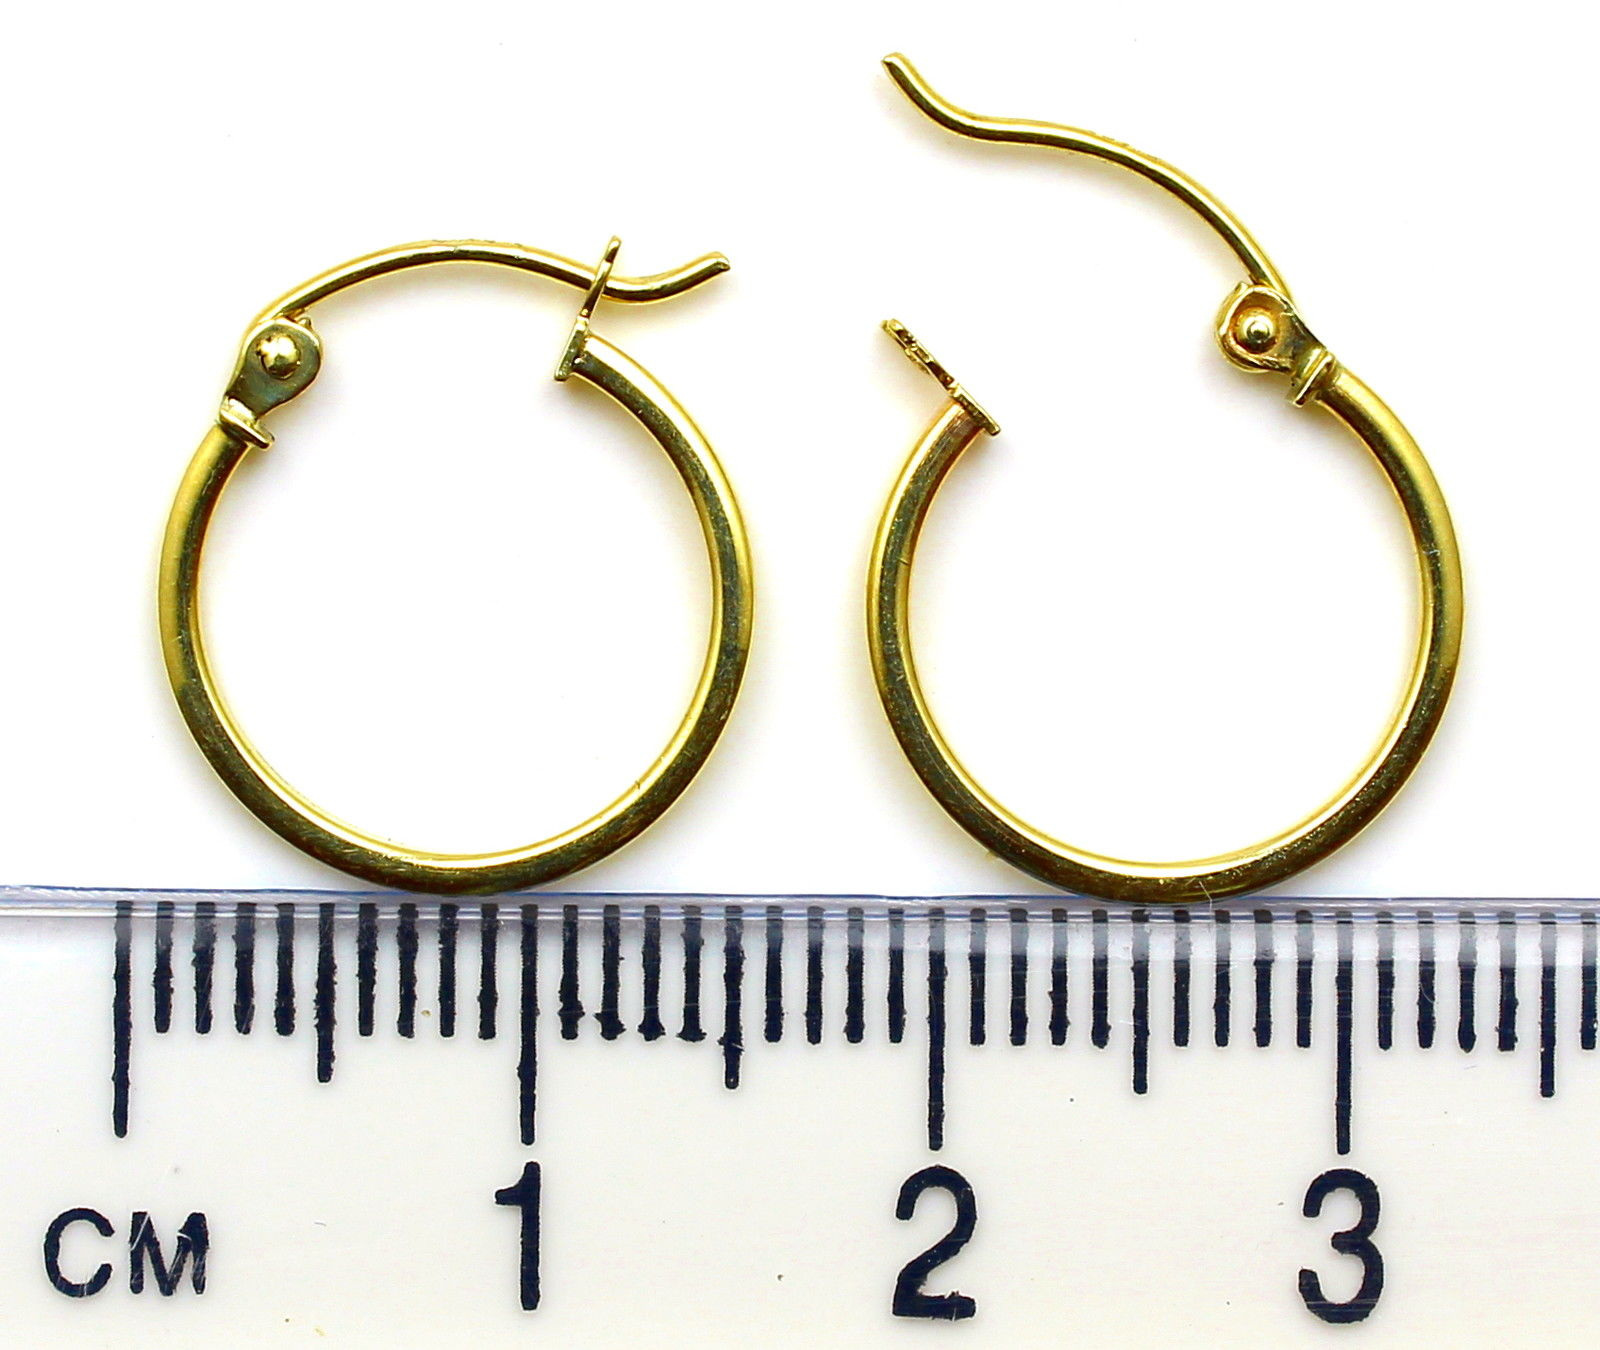 Arranview Jewellery Gold Hinged Heavy Weight Hoop Earring (15mm) - 375 9ct Yellow Gold 9n1RRY0